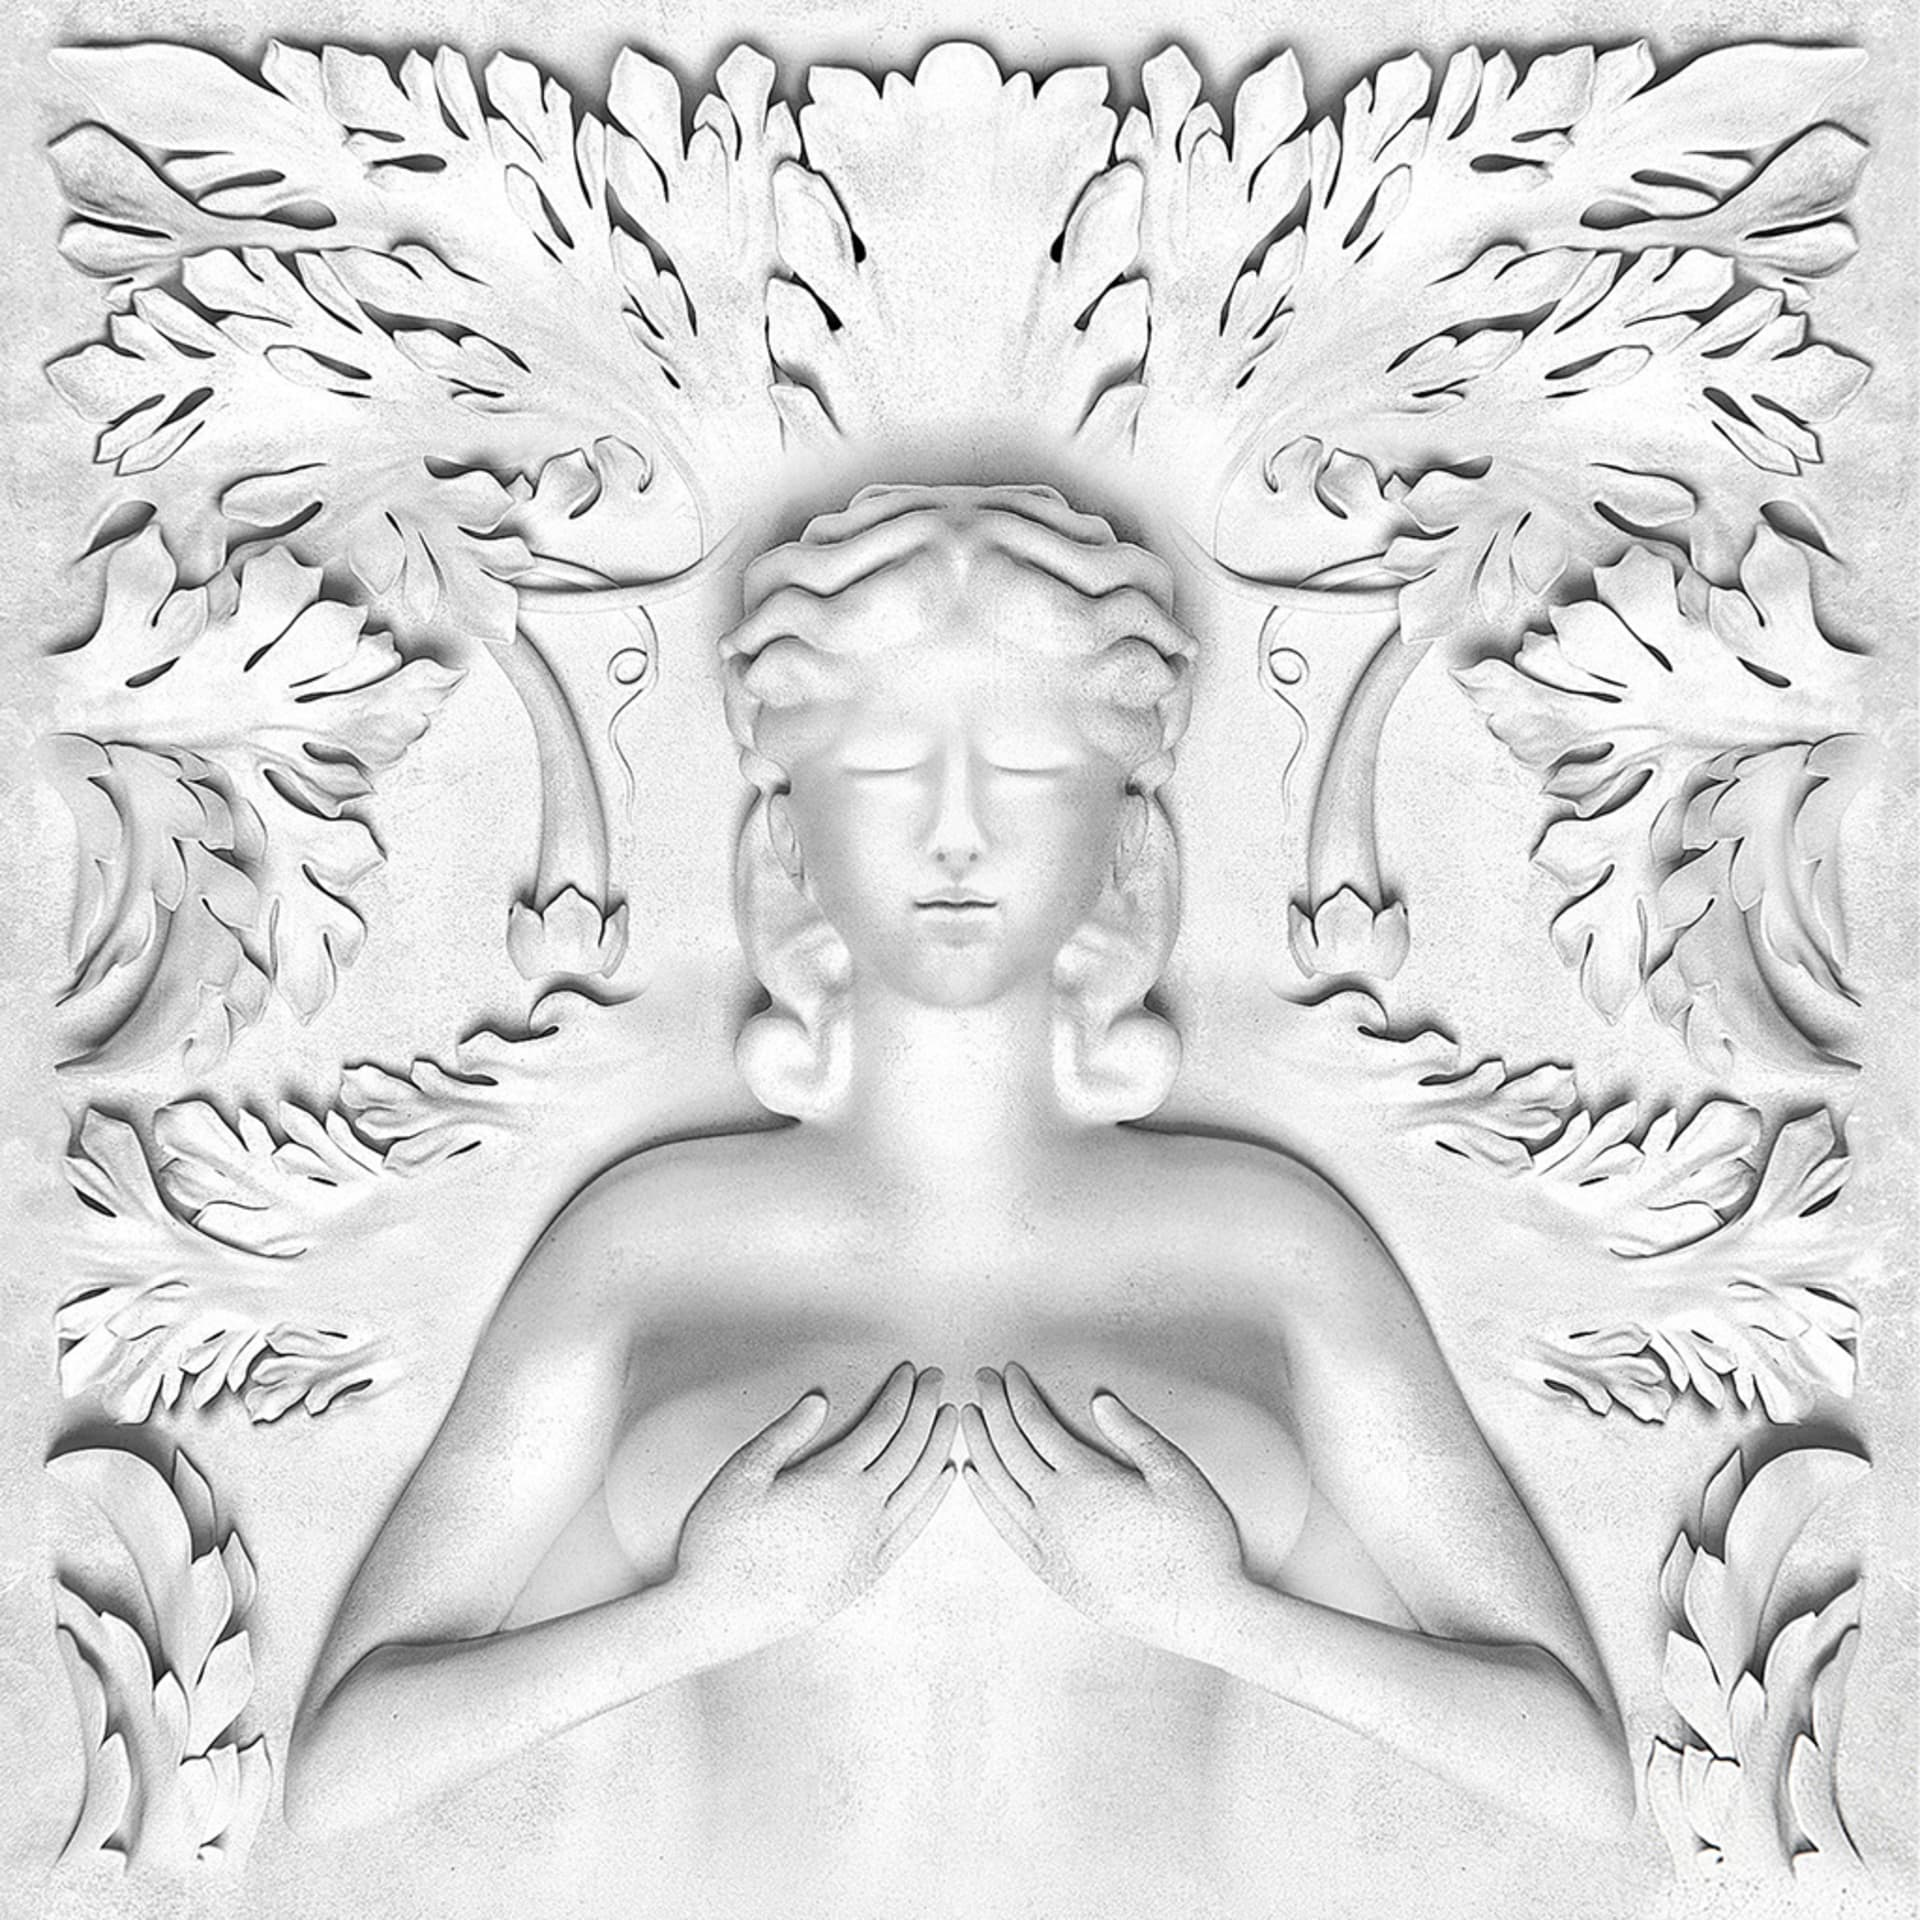 'Cruel Summer' album cover